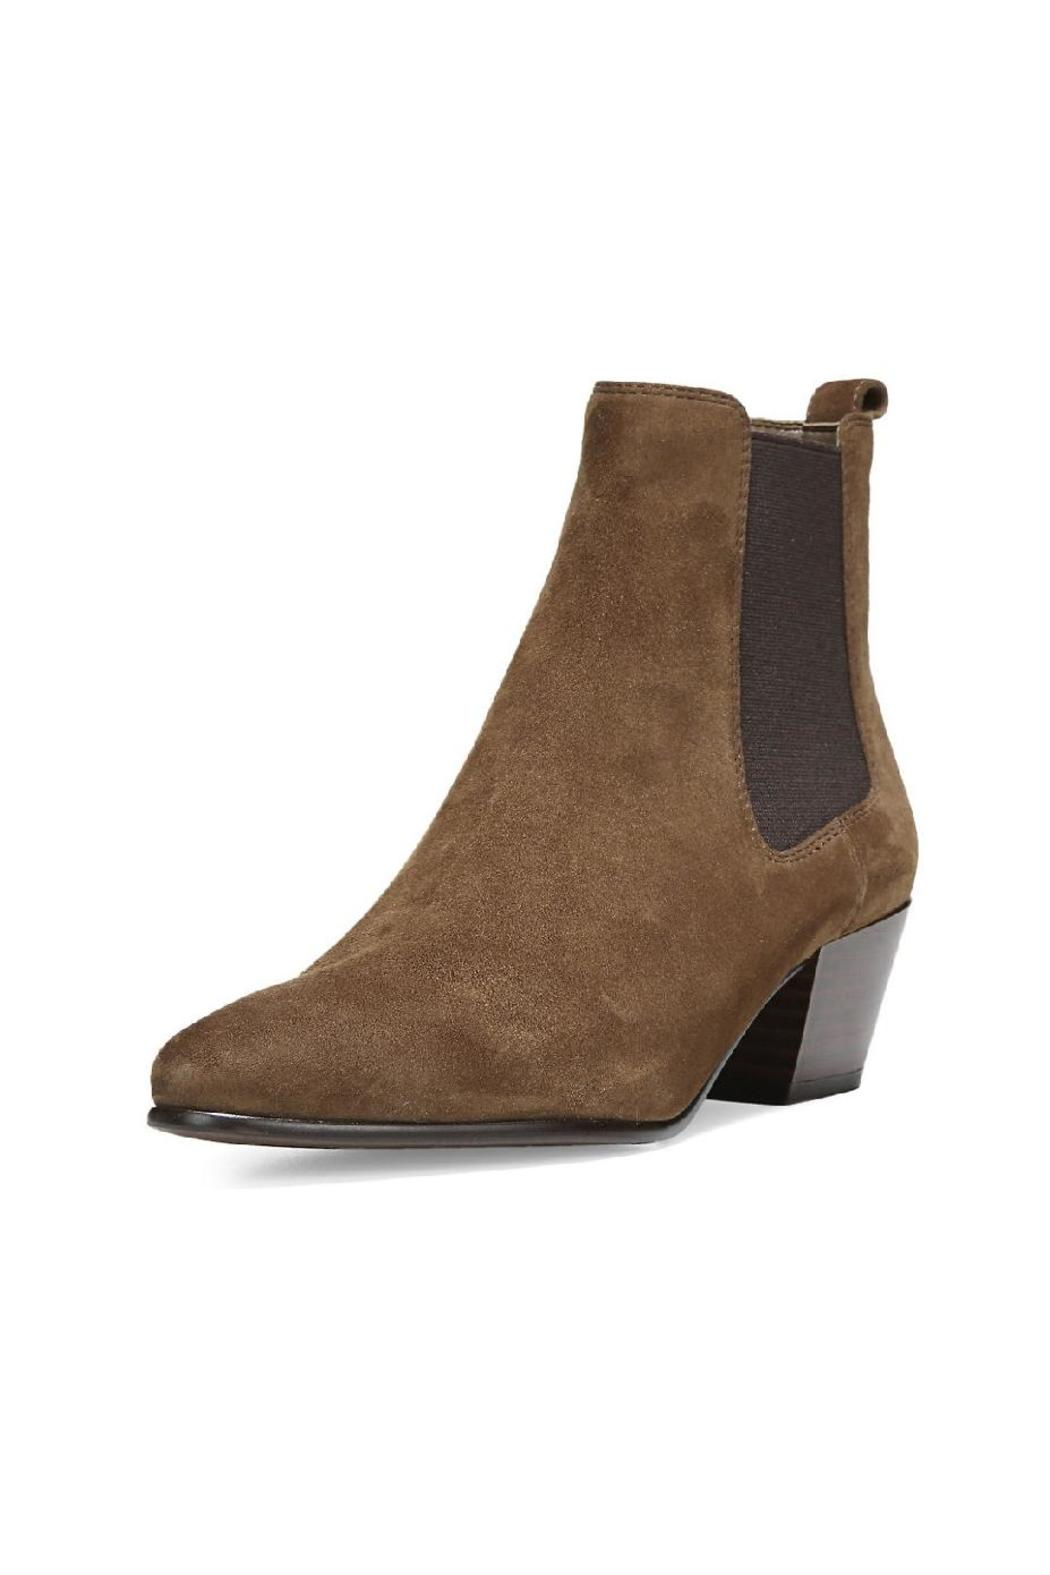 a510c8e89dbf8 Sam Edelman Reesa Ankle Bootie from Hudson Valley by Bfree — Shoptiques